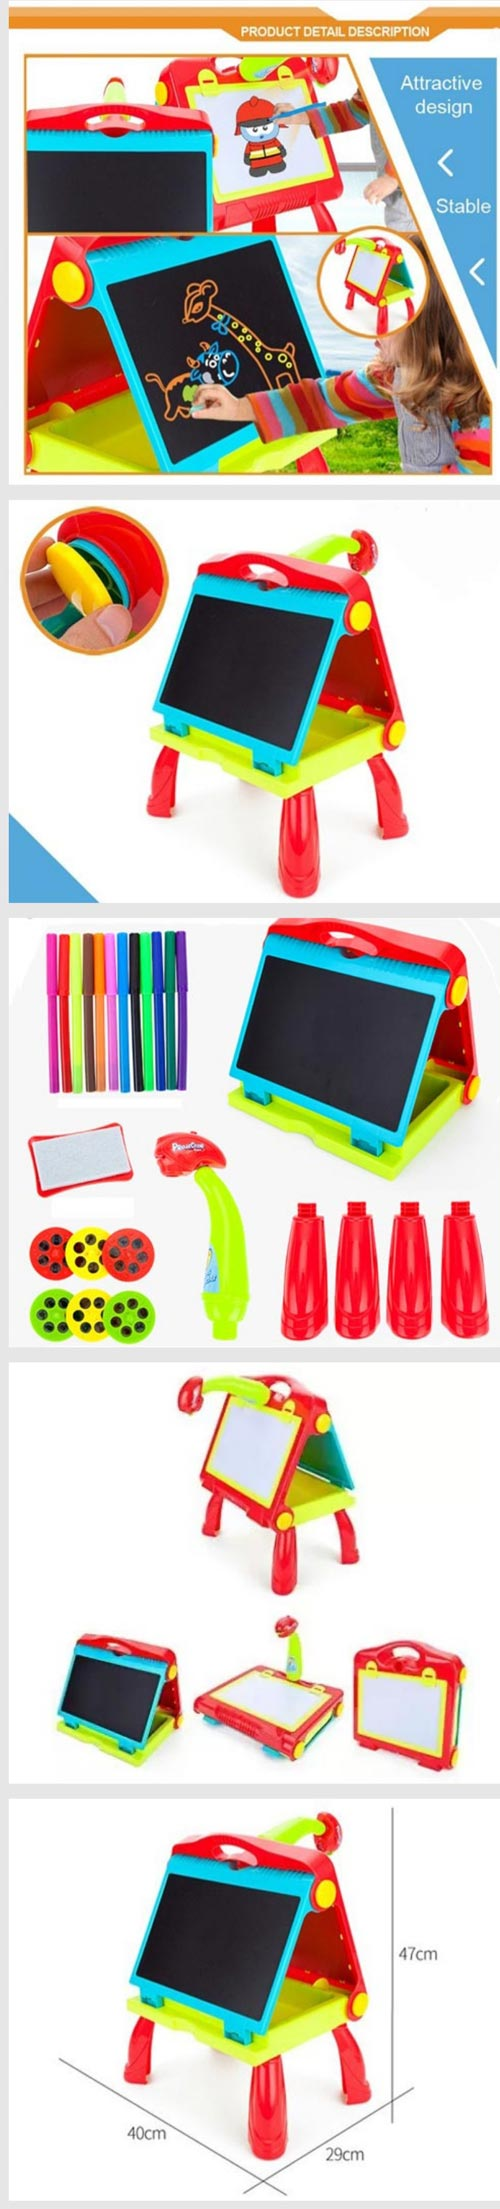 4 In 1 Study Projector Folding Table For Kids